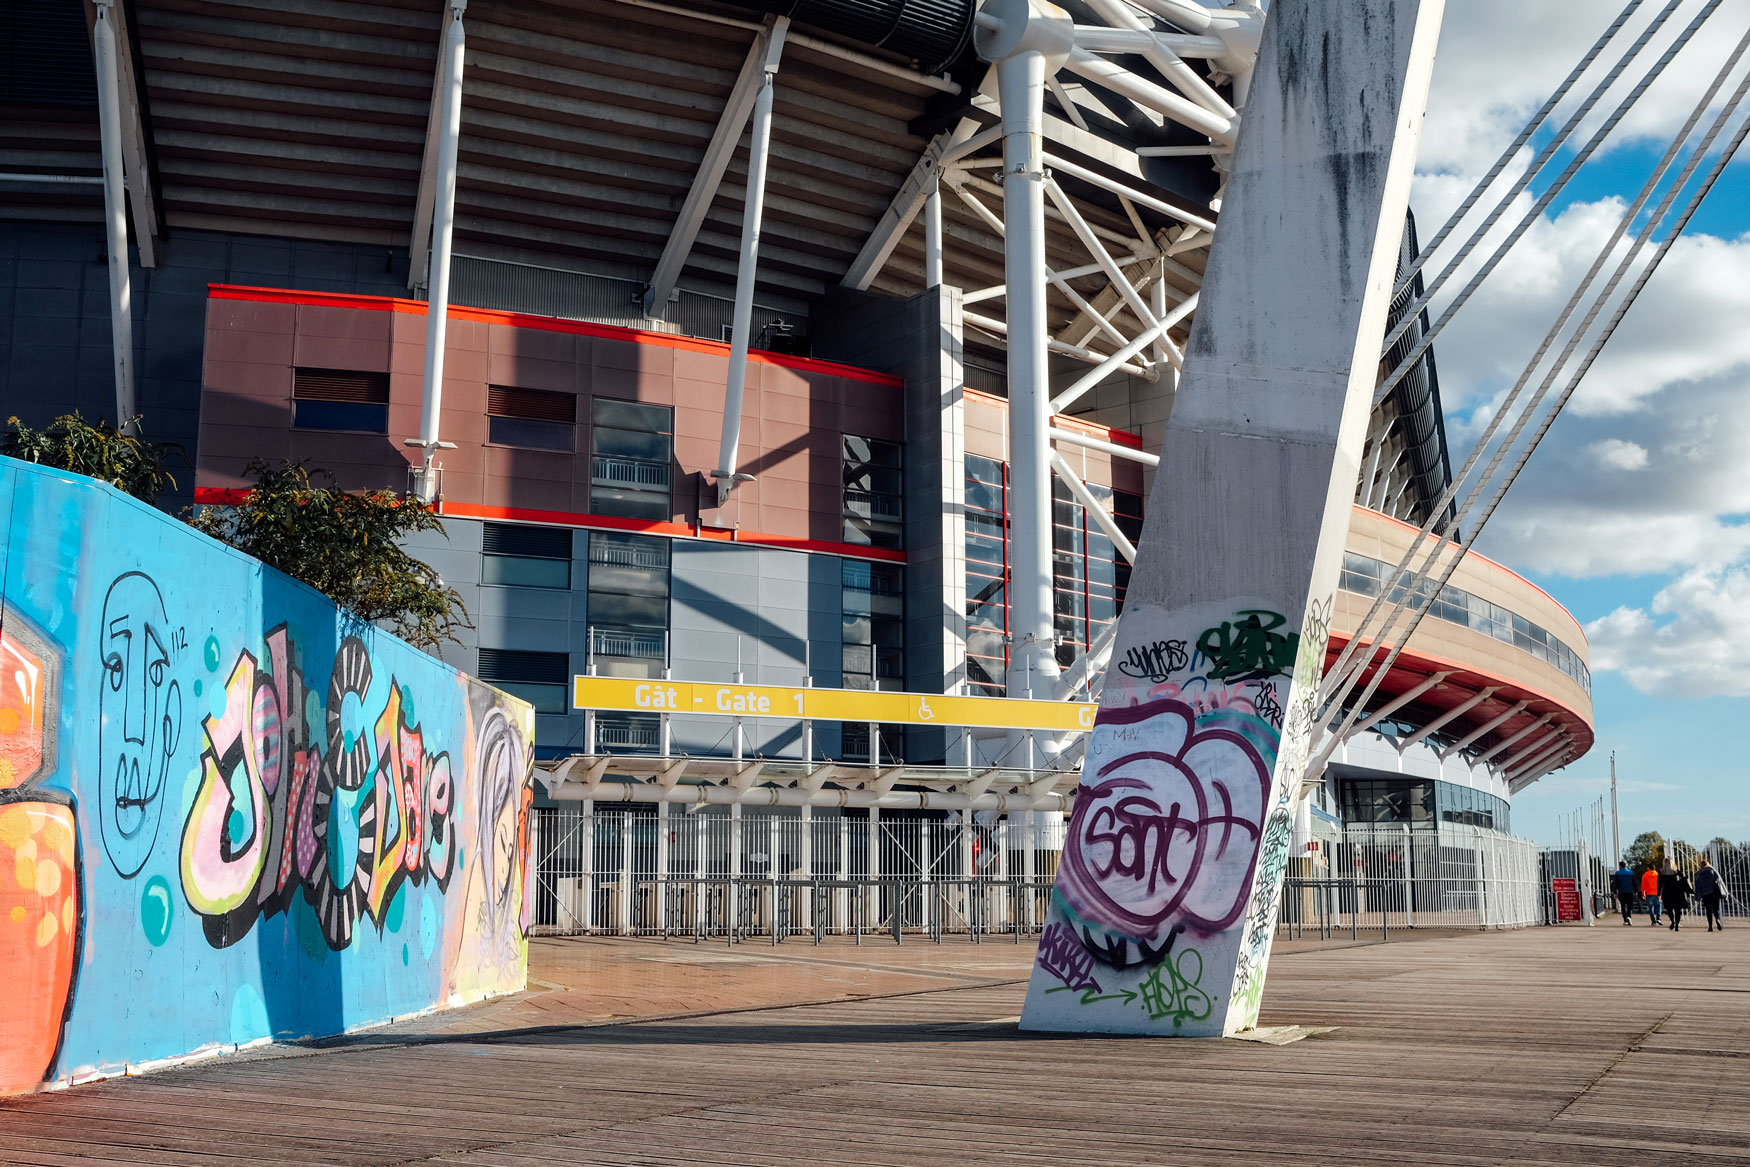 João​ Pequito pluzbrut graffiti creative branding brand graphic design marketing colour cardiff principality stadium millennium callum richards sarah burley gareth strange